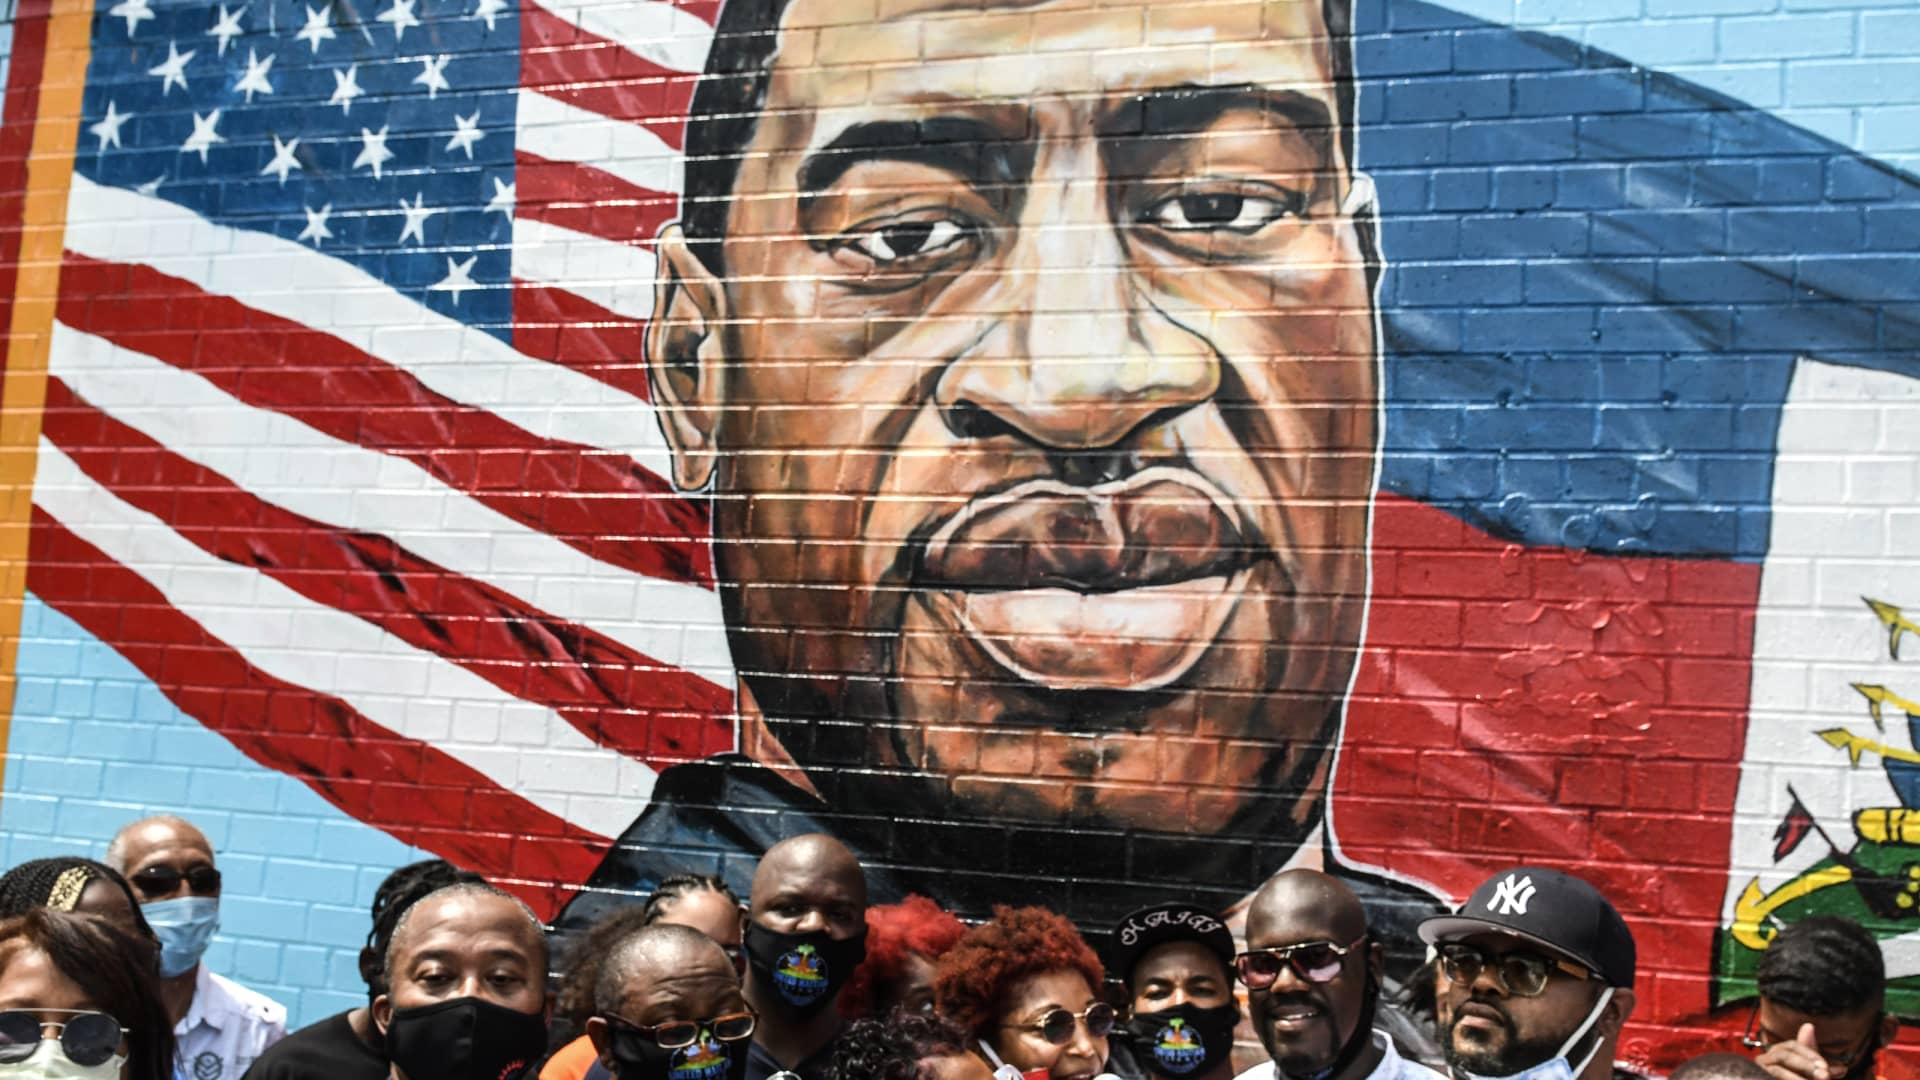 Terrance Floyd (R), the brother of George Floyd, attends a unveiling of a mural painted by artist Kenny Altidor depicting George Floyd on a sidewall of CTown Supermarket on July 13, 2020 in Brooklyn, New York City.